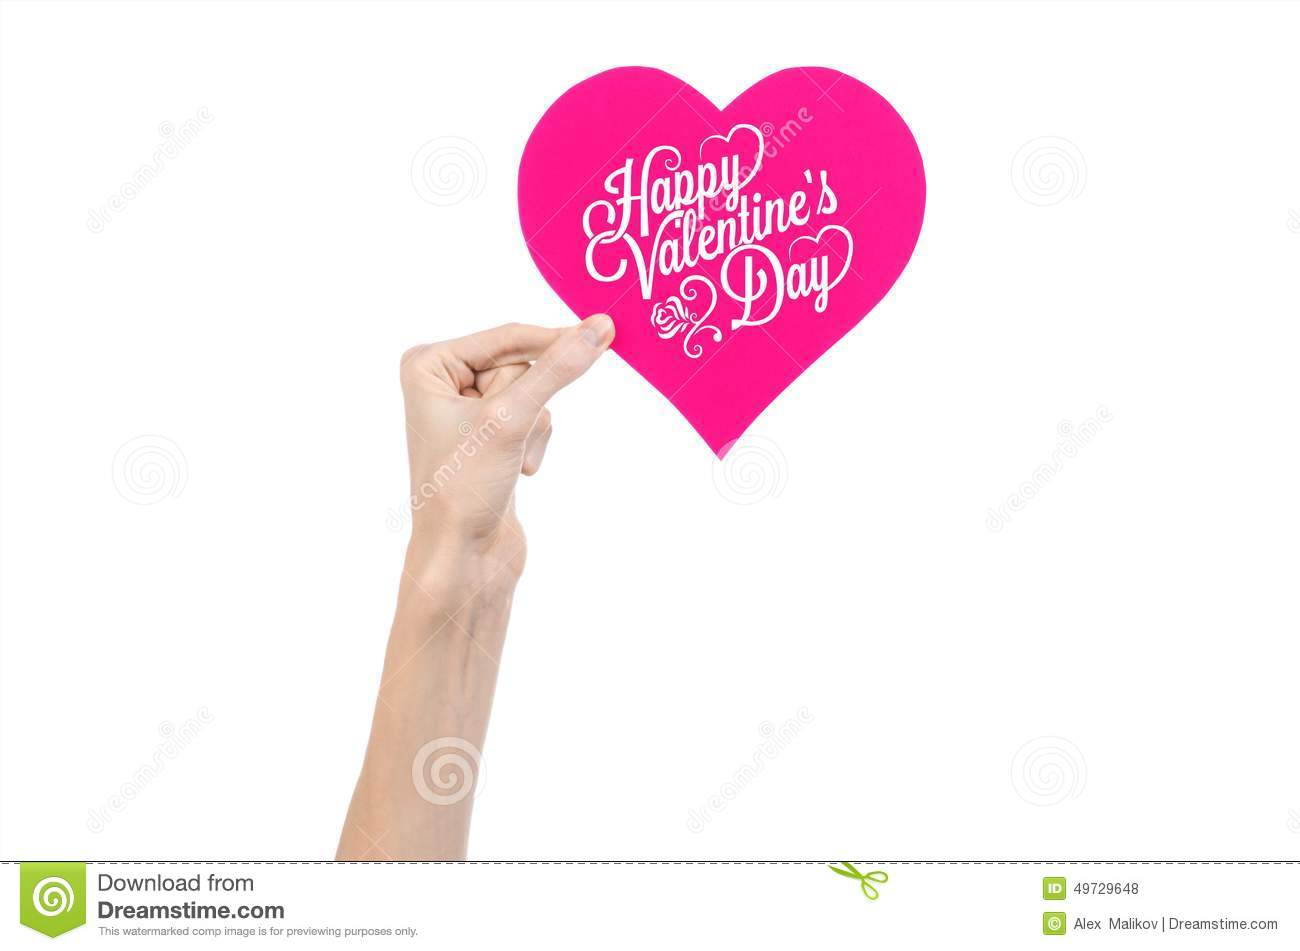 Valentines day and love theme hand holds a greeting card in the valentine s day and love theme hand holds a greeting card in the form of a pink heart with the words happy valentine s day background happiness kristyandbryce Images